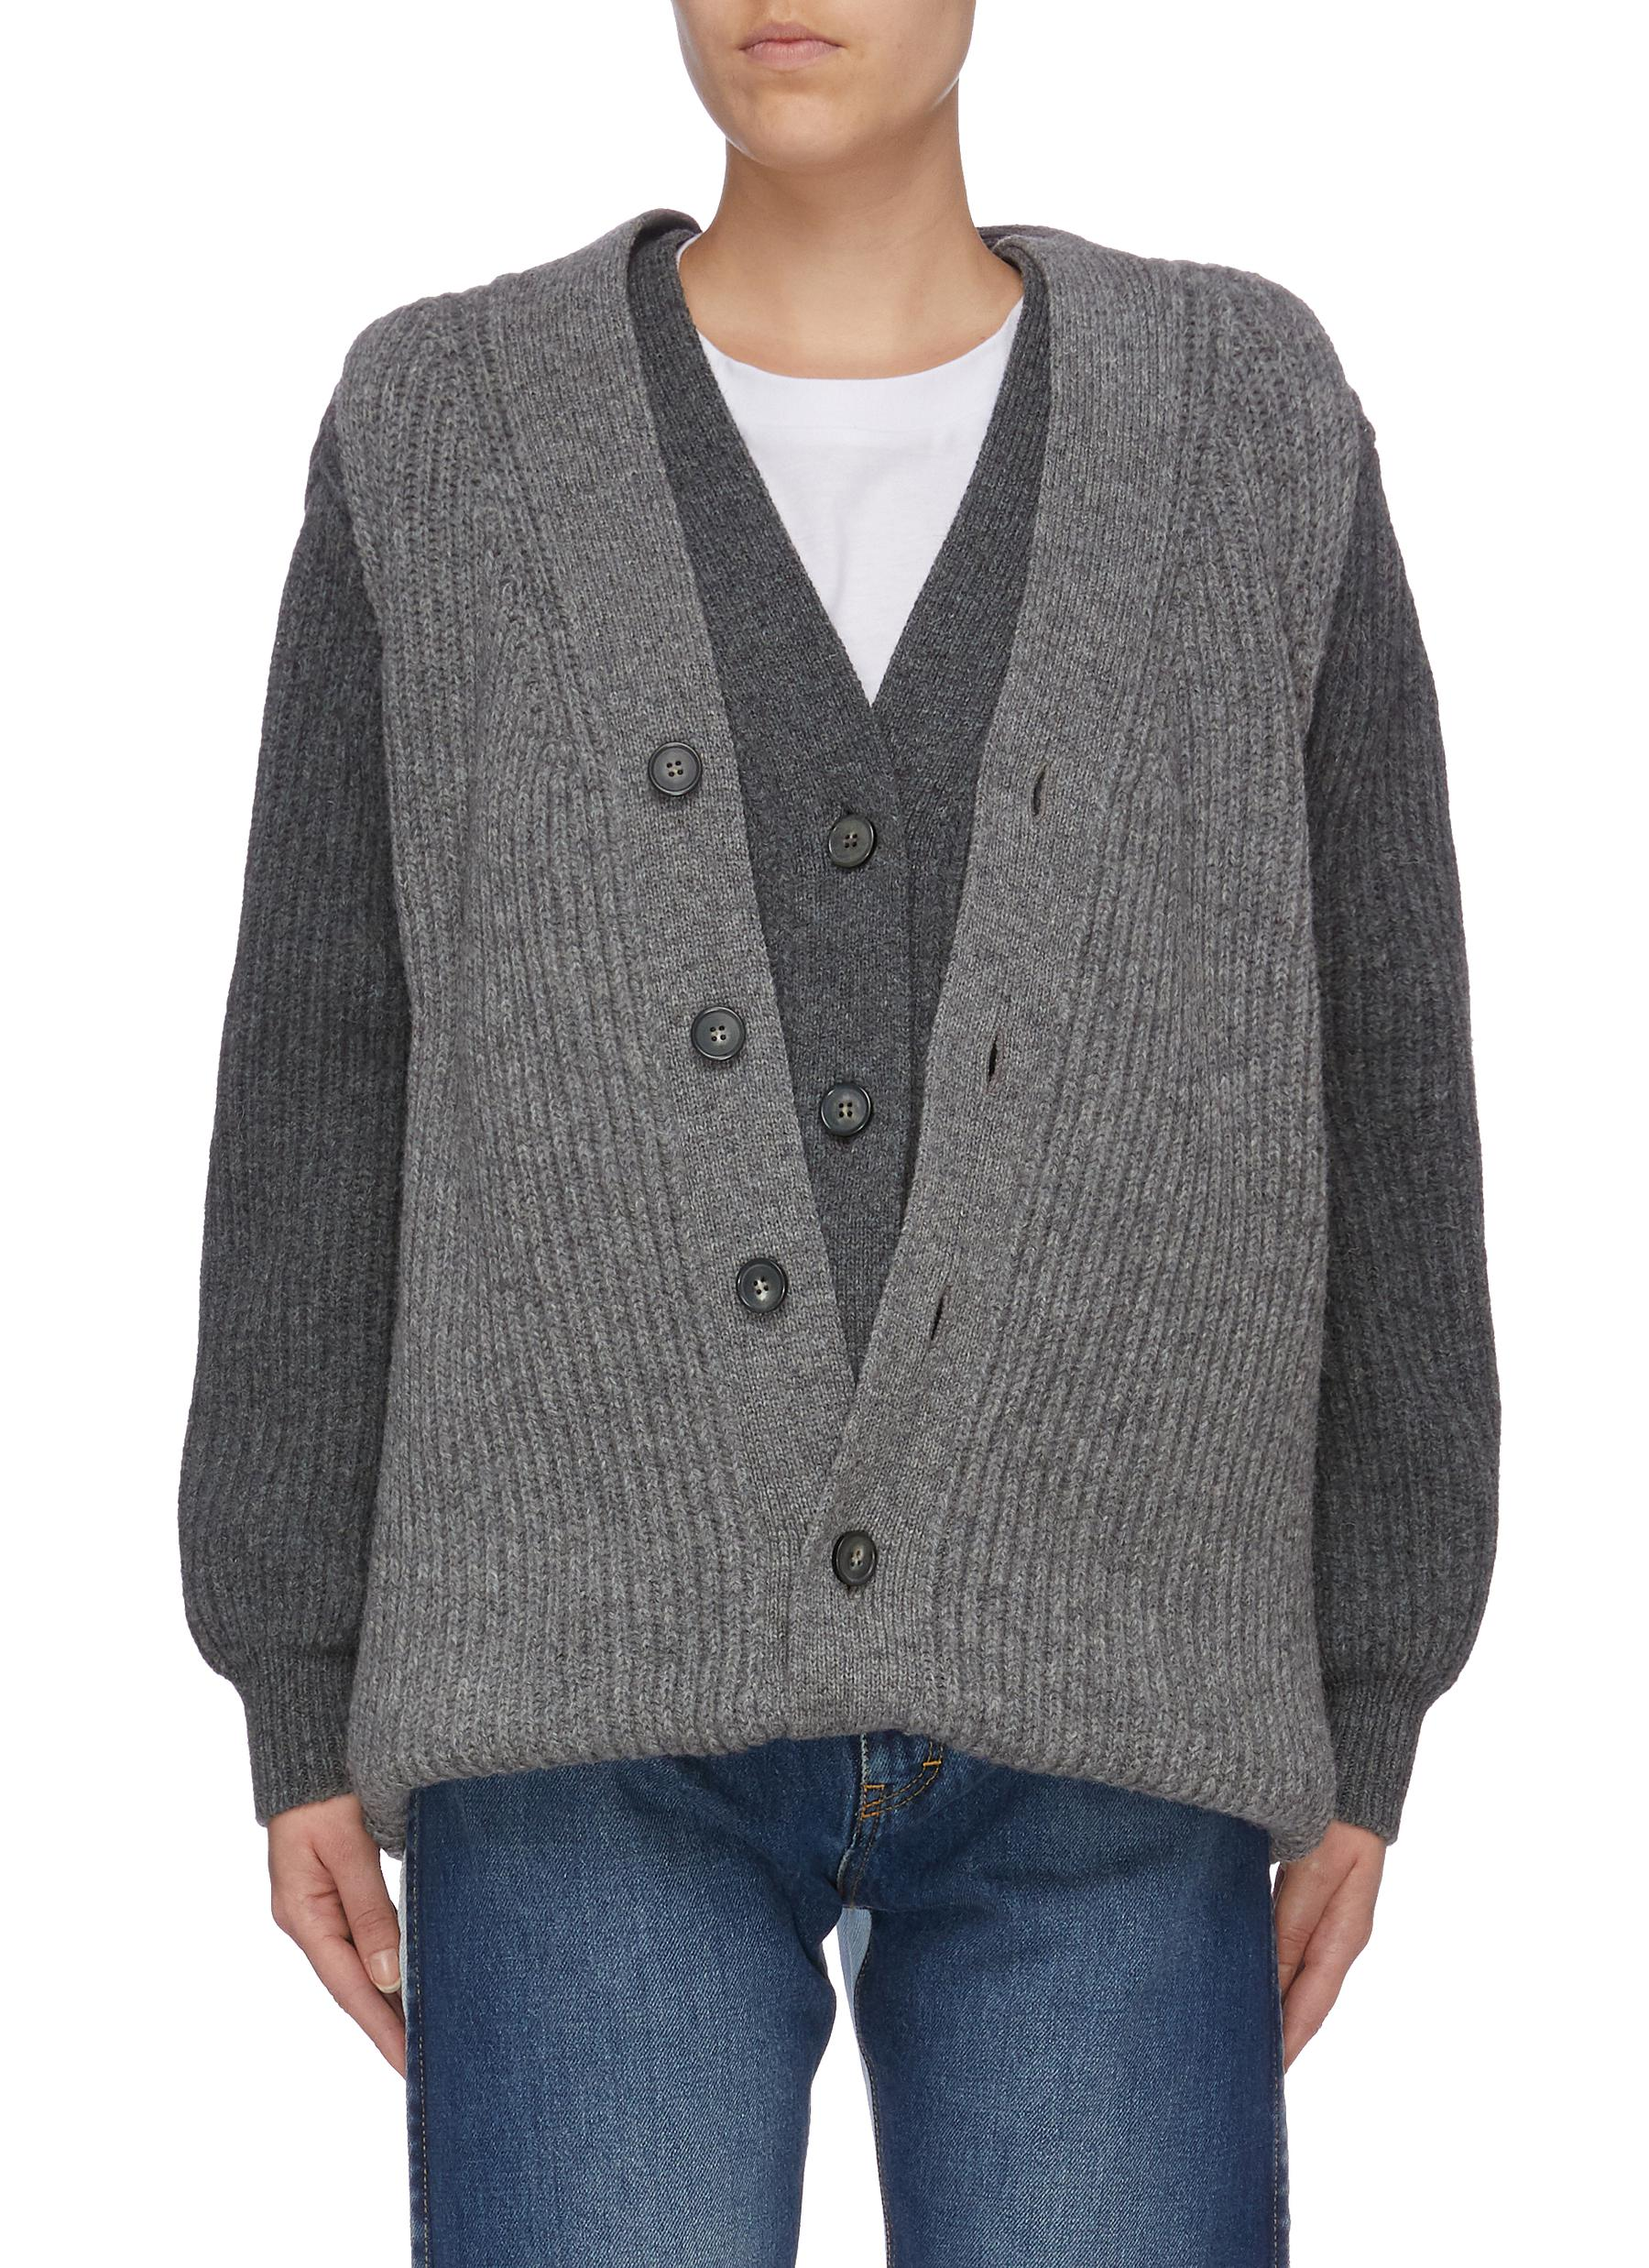 Convertible colourblock vest panel layered wool cardigan by Maison Margiela